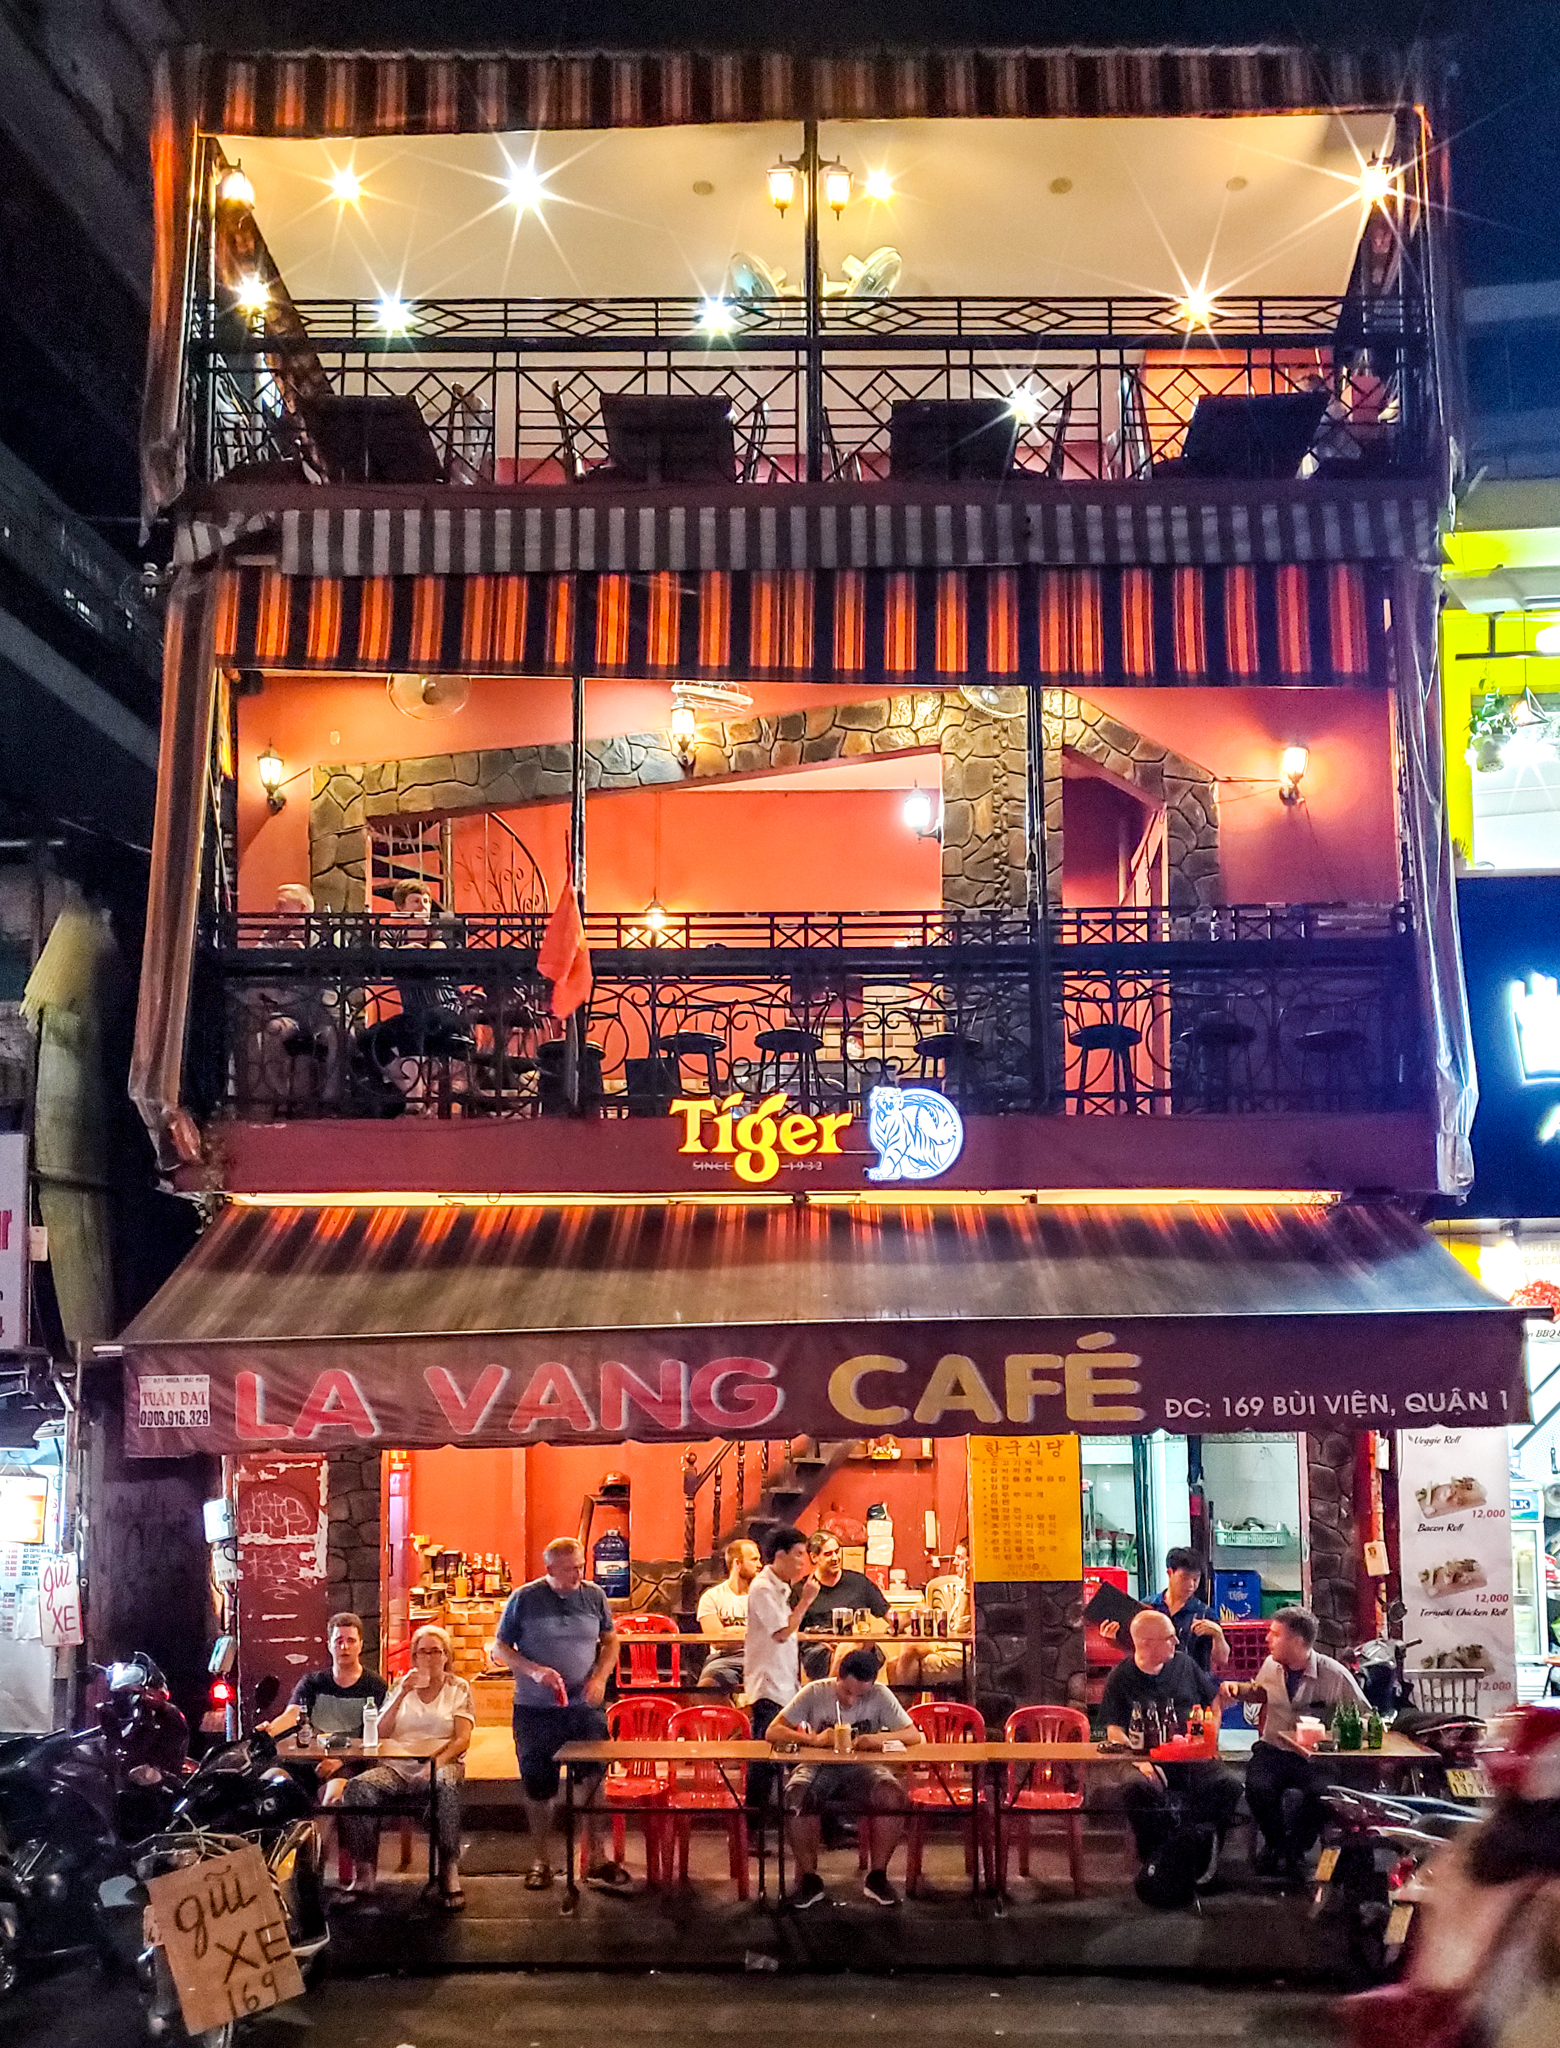 Uprooted-Traveler-48-hour-itinerary-Ho-Chi-Minh-la-vong-cafe.jpg